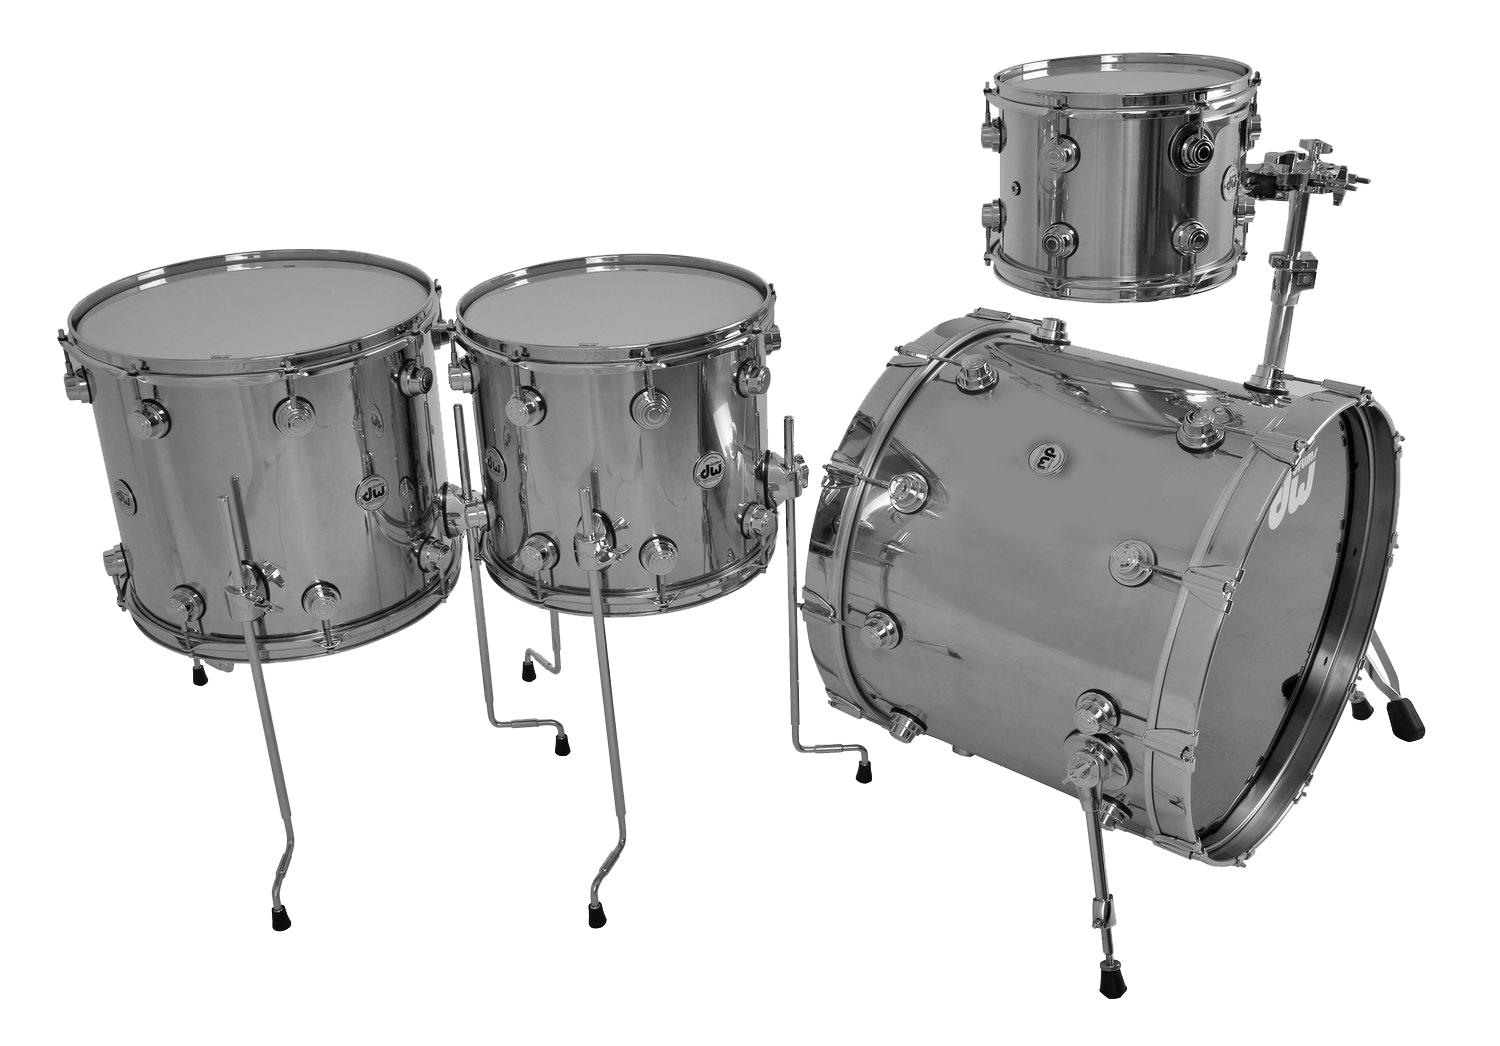 Acoustic Drum Kits Dw Collectors Stainless Steel Shell